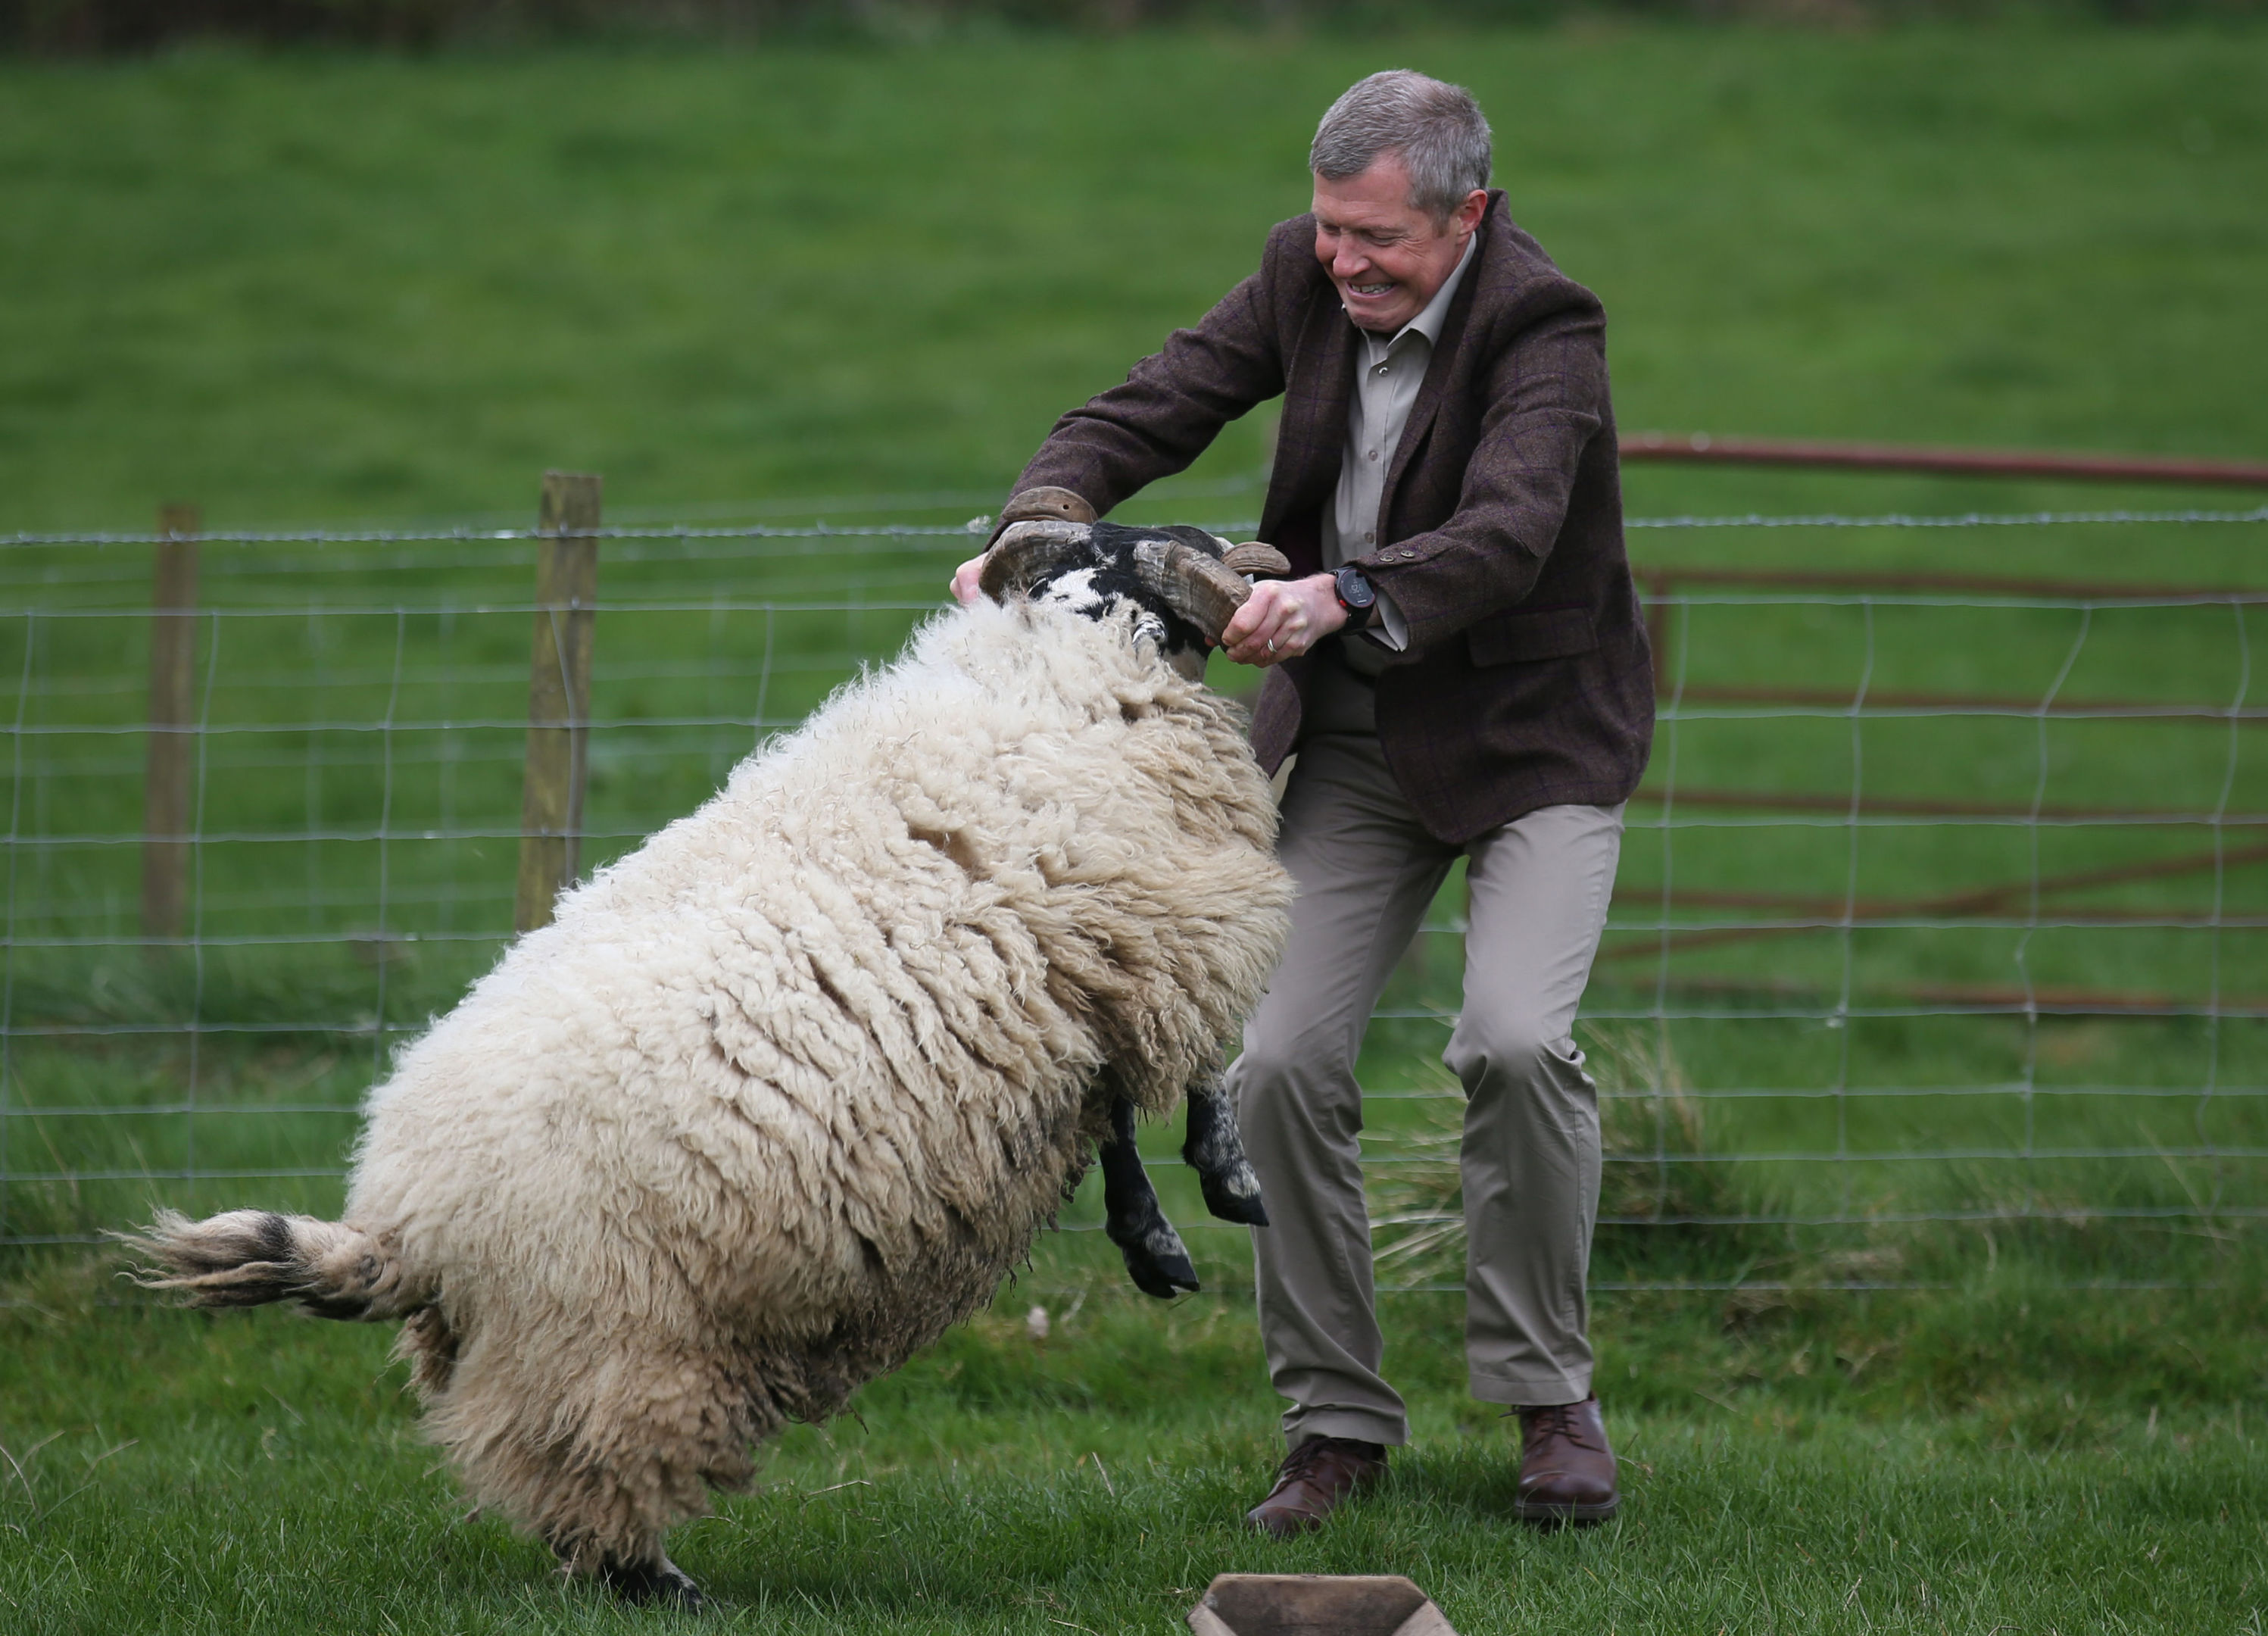 Scottish Liberal Democrat leader Willie Rennie with a ram during a visit to Mill House farm in Kelty, Fife, as he campaigned in the Scottish local elections. (Andrew Milligan/PA Wire)